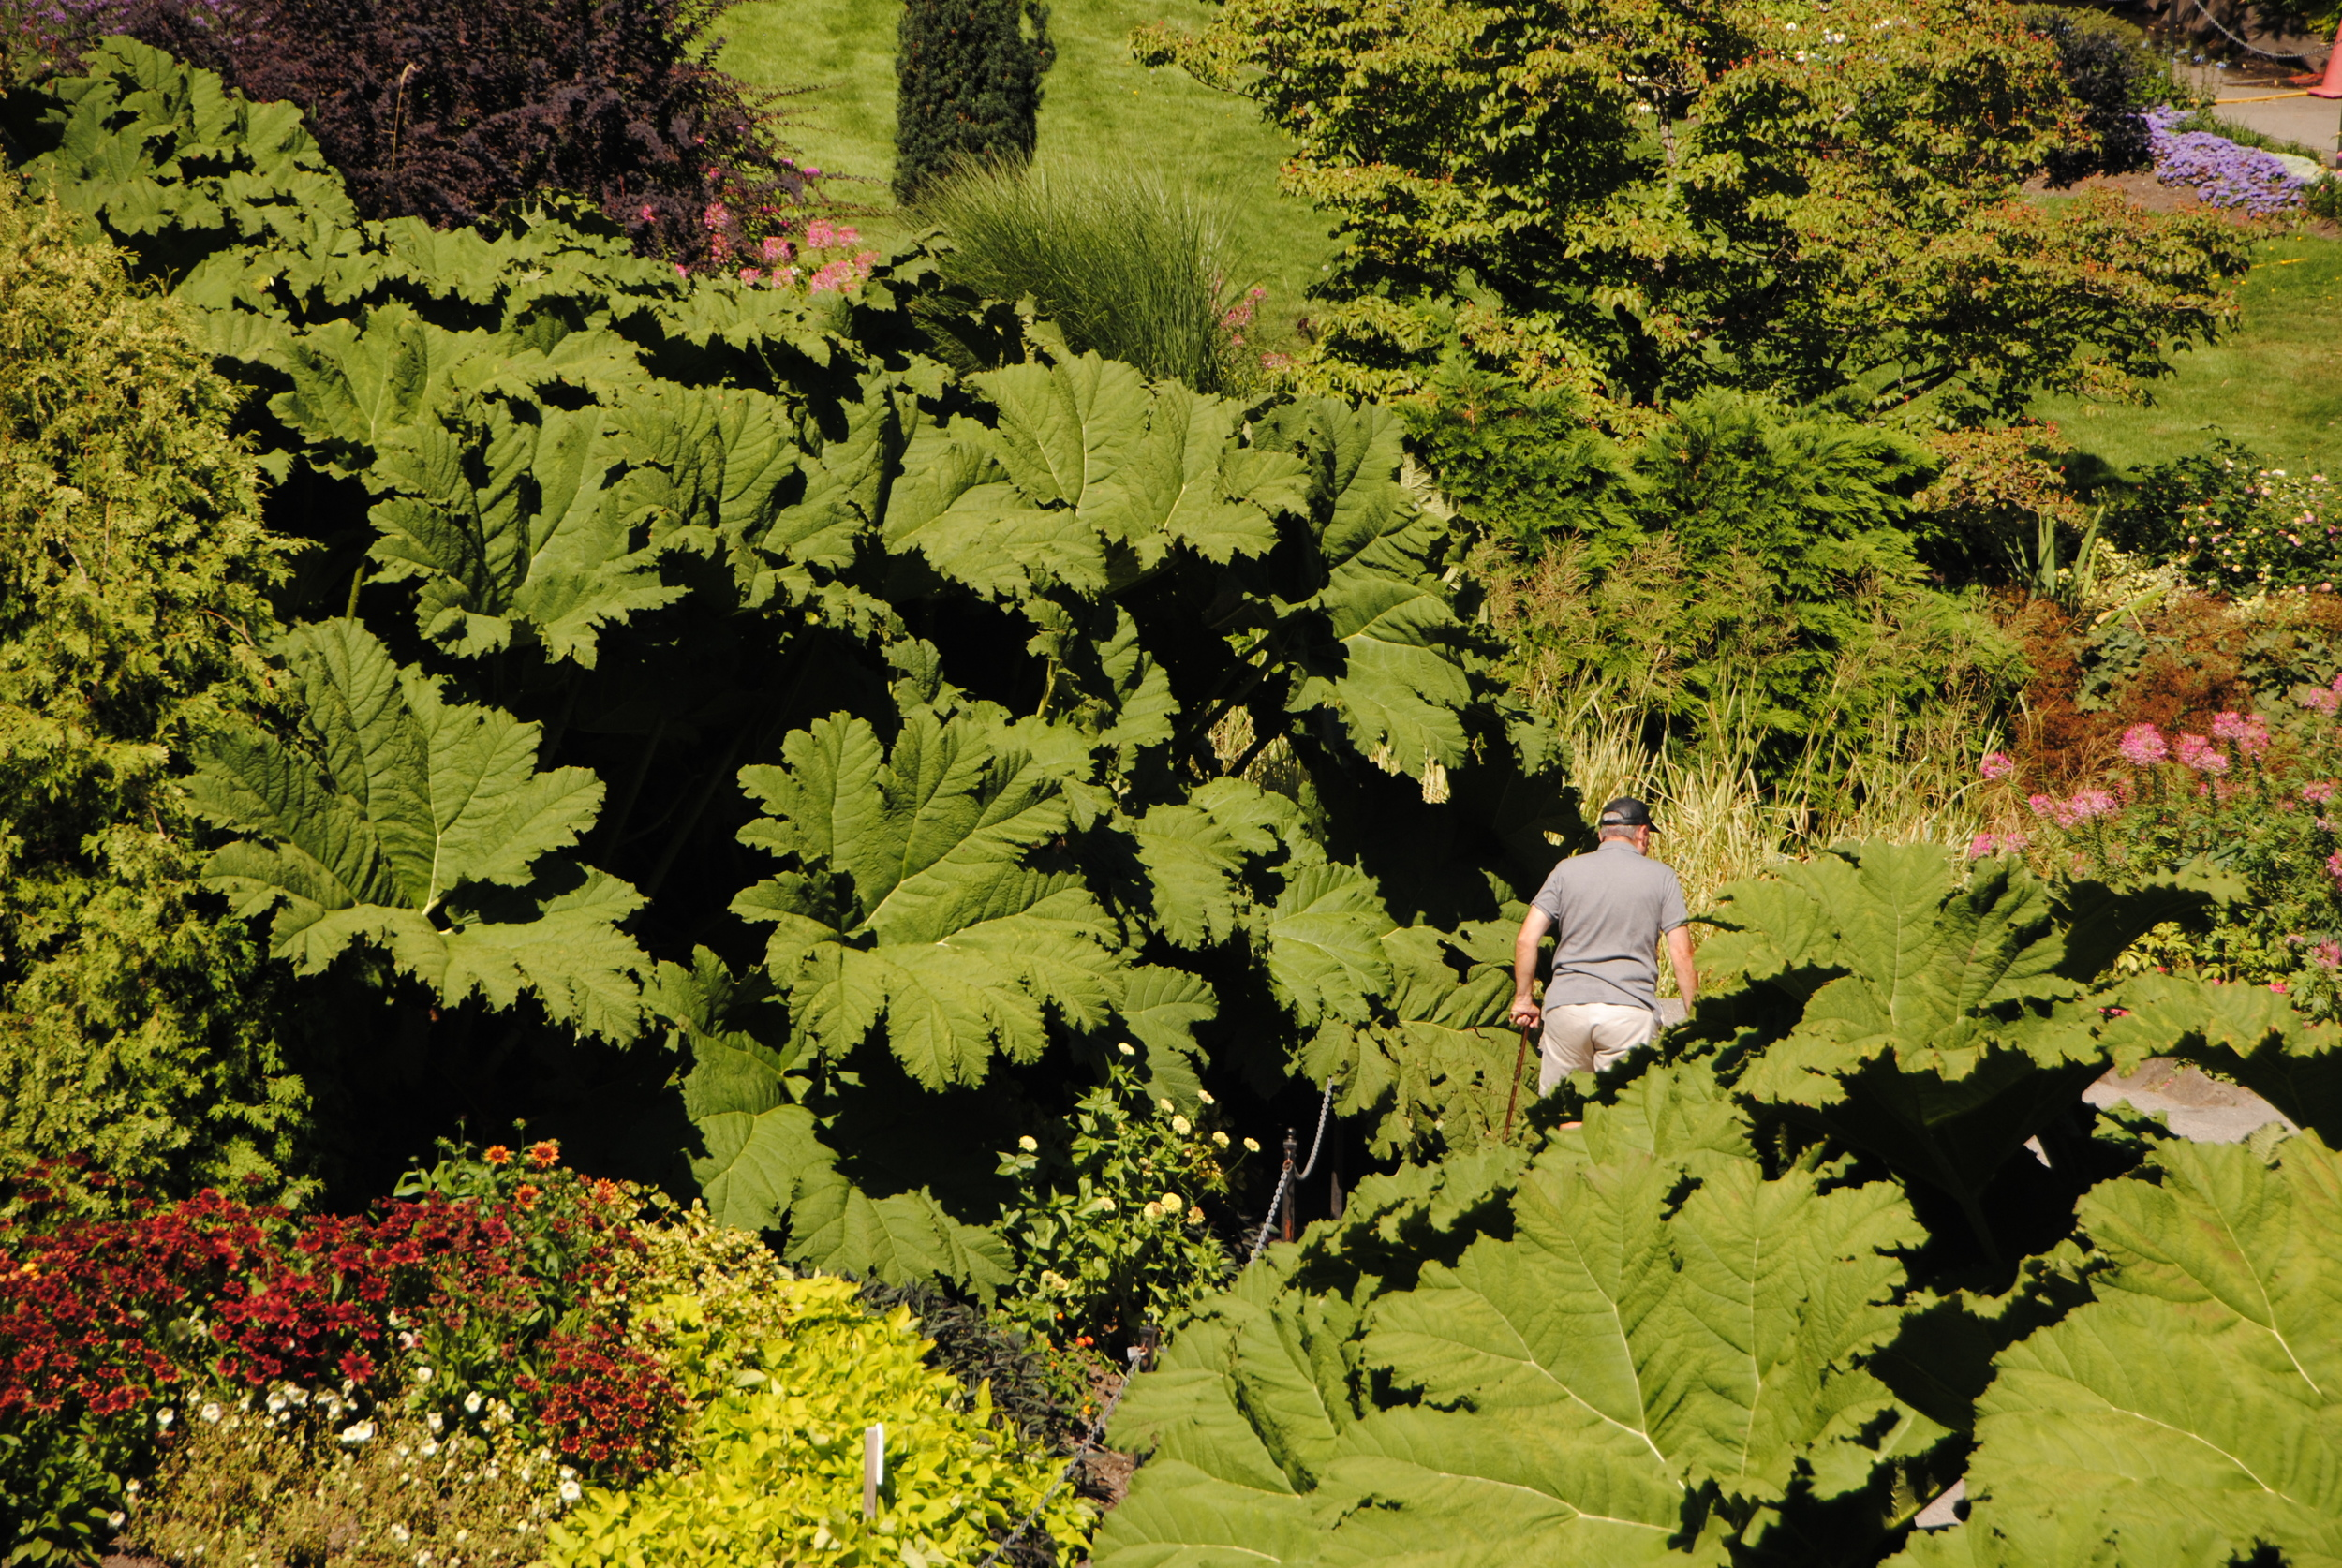 The obligatory Gunnera shot that us east coasters can't resist.